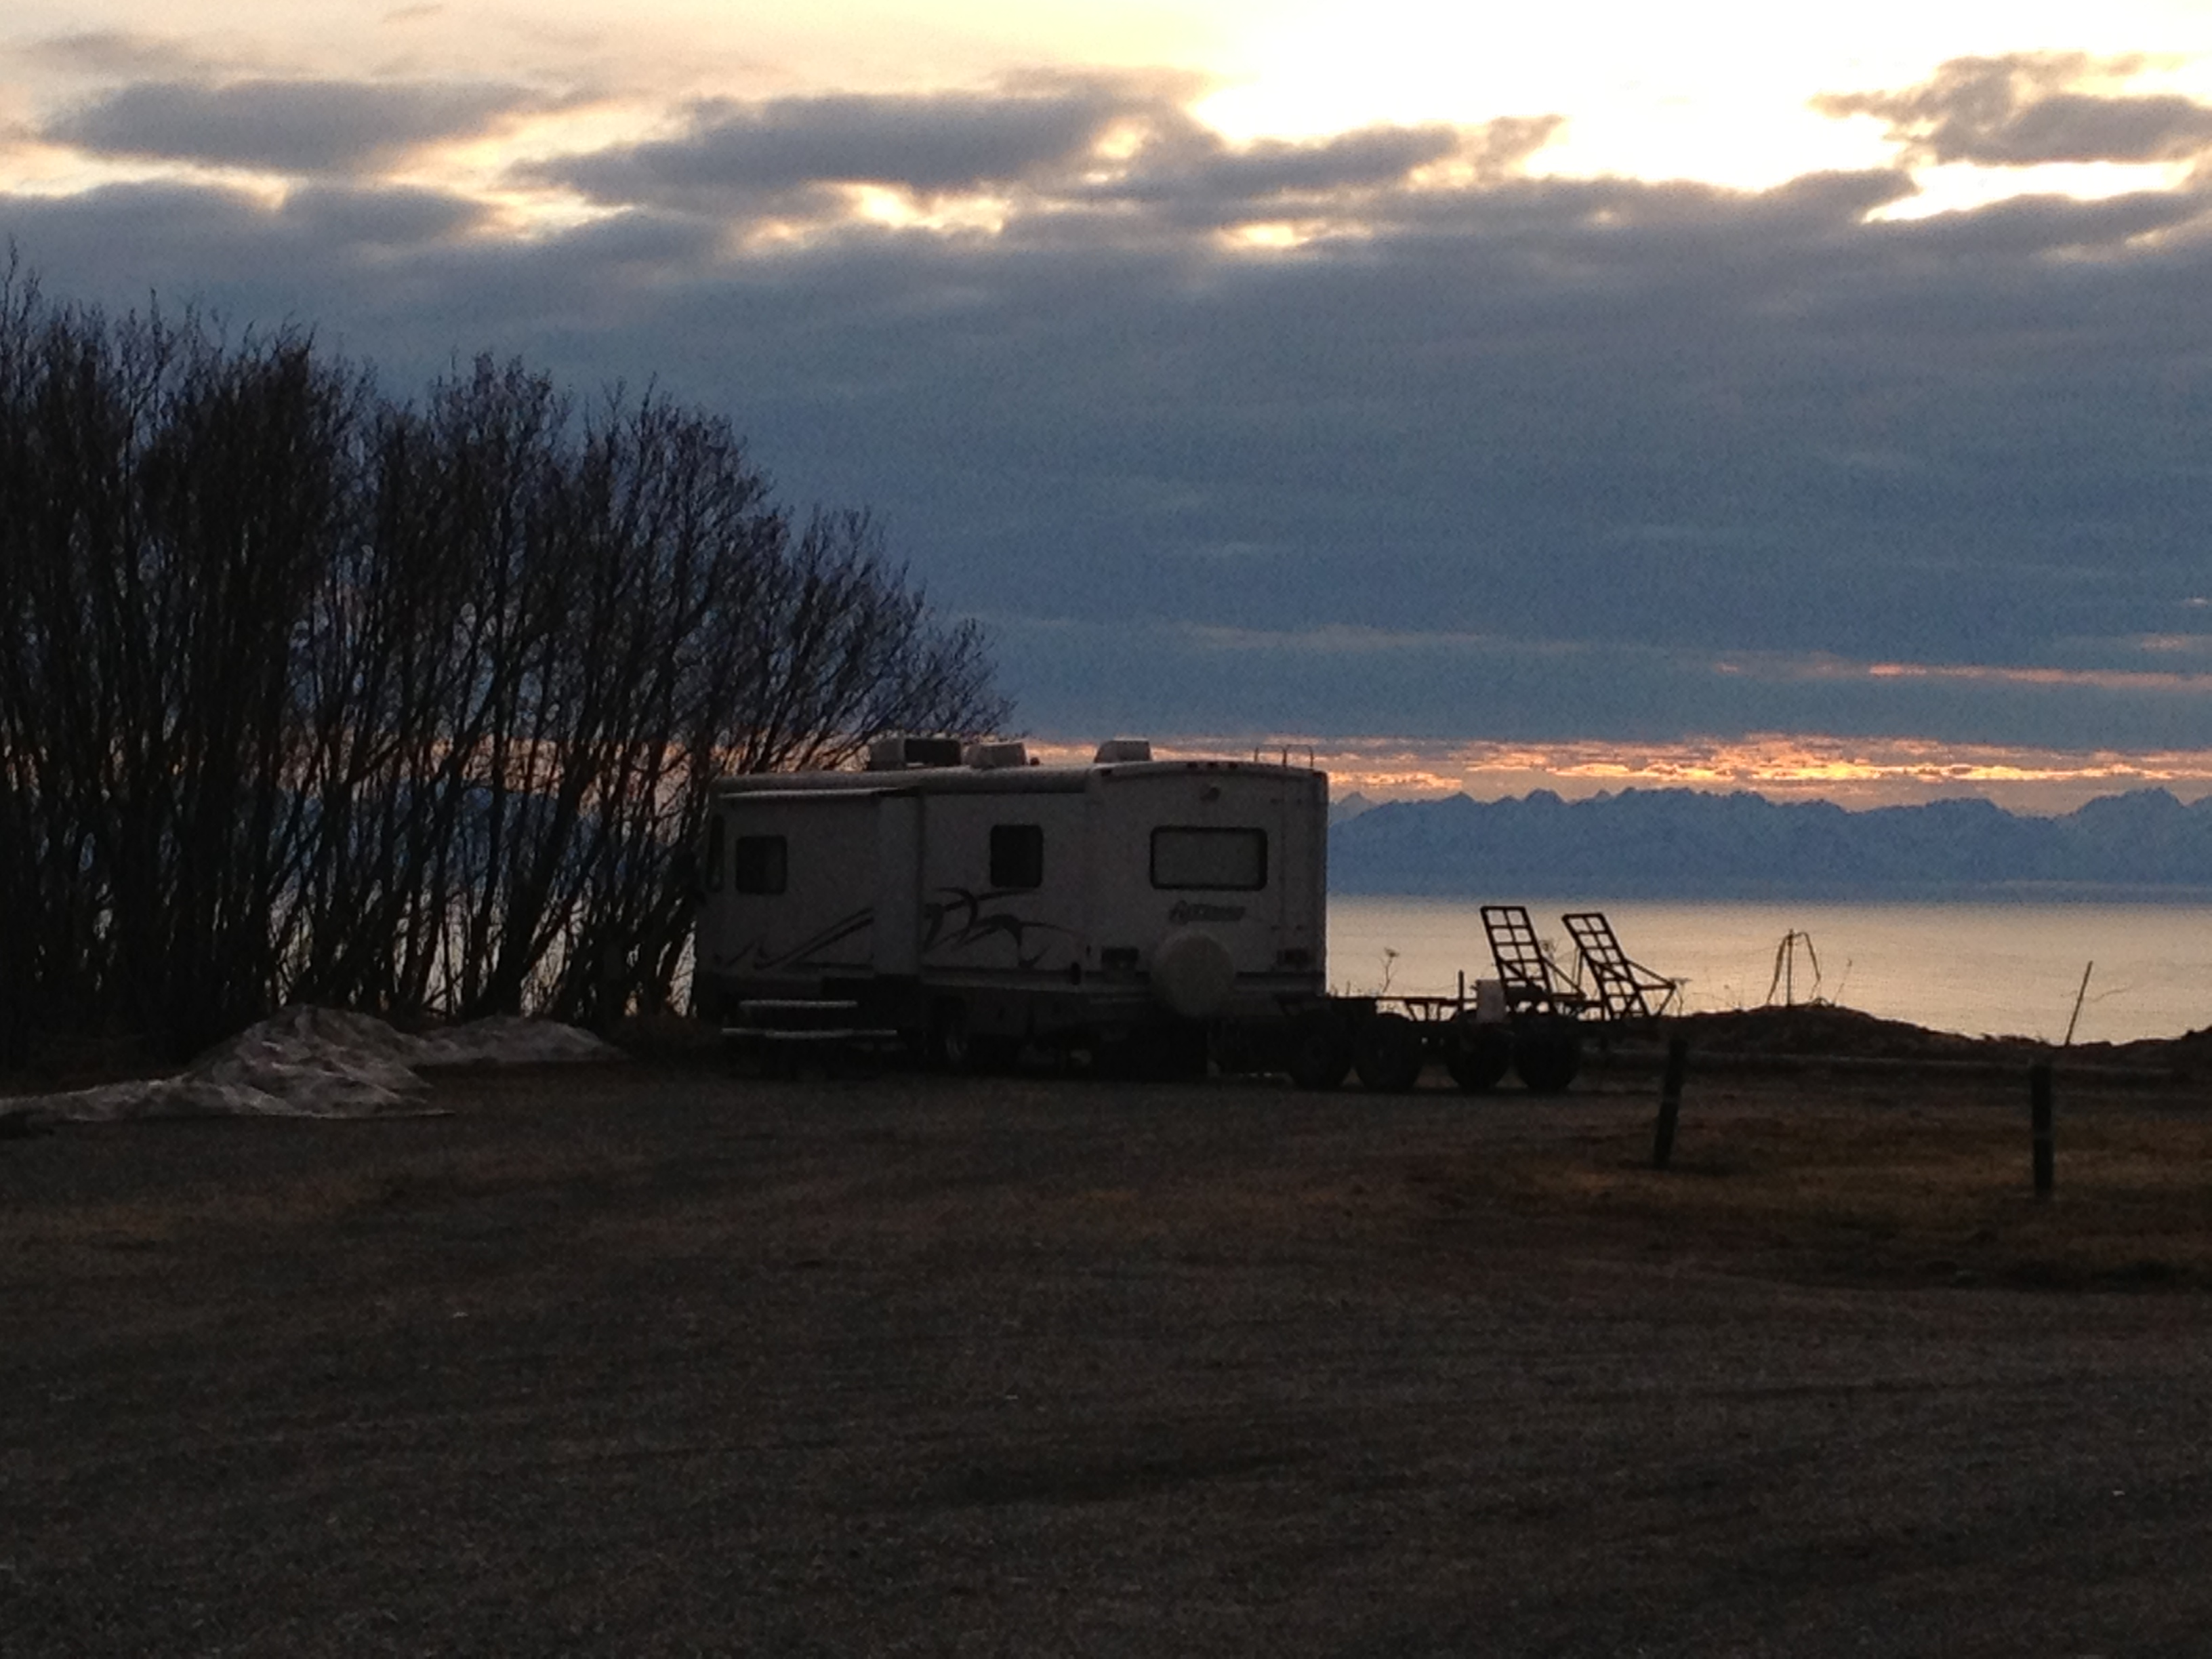 Alaska RV Parks: What you need to know